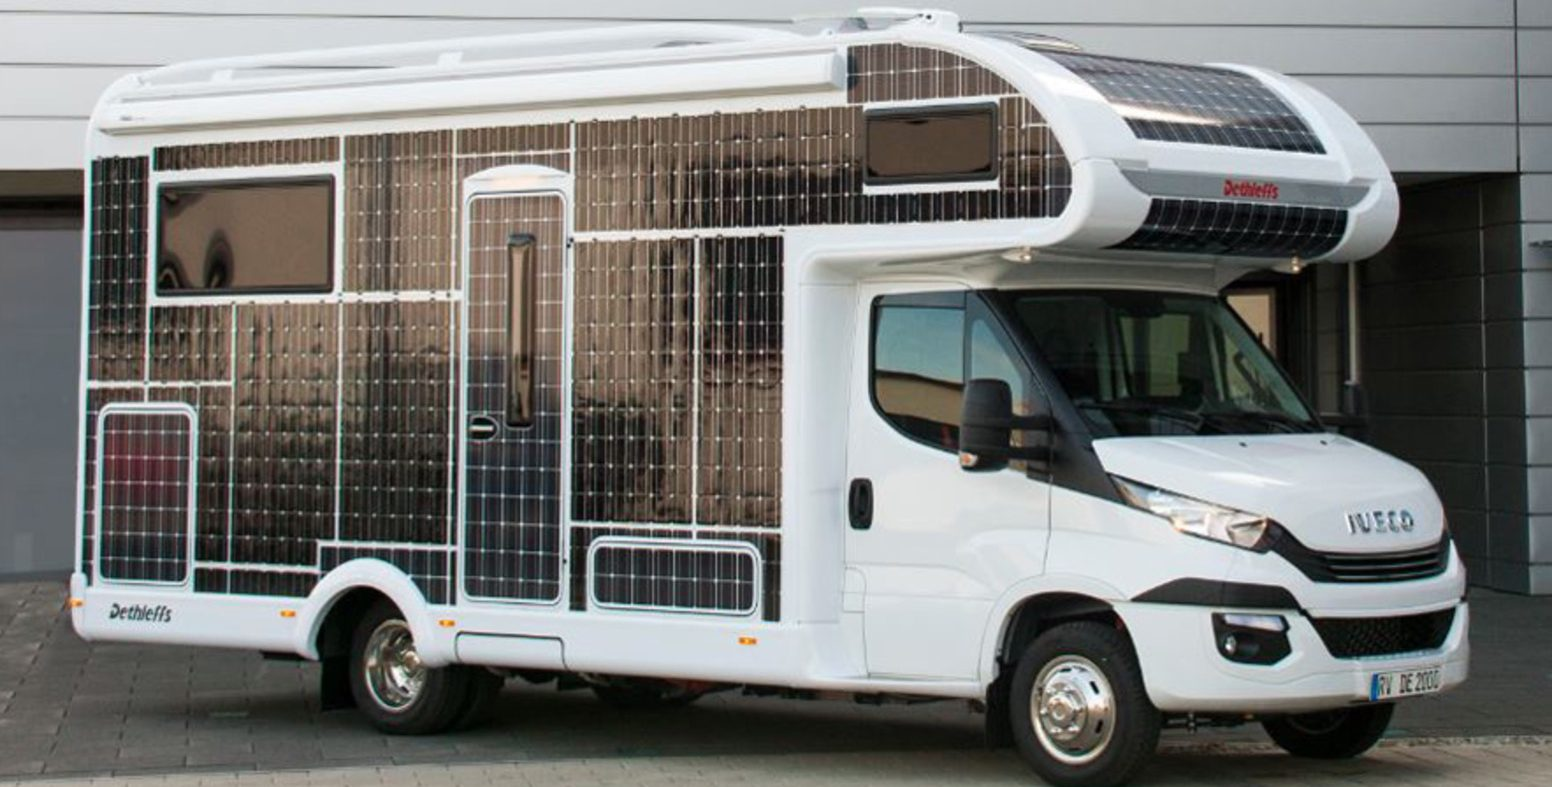 Electric motorhomes are coming: a new RV powered by solar panels and 91 kWh battery pack